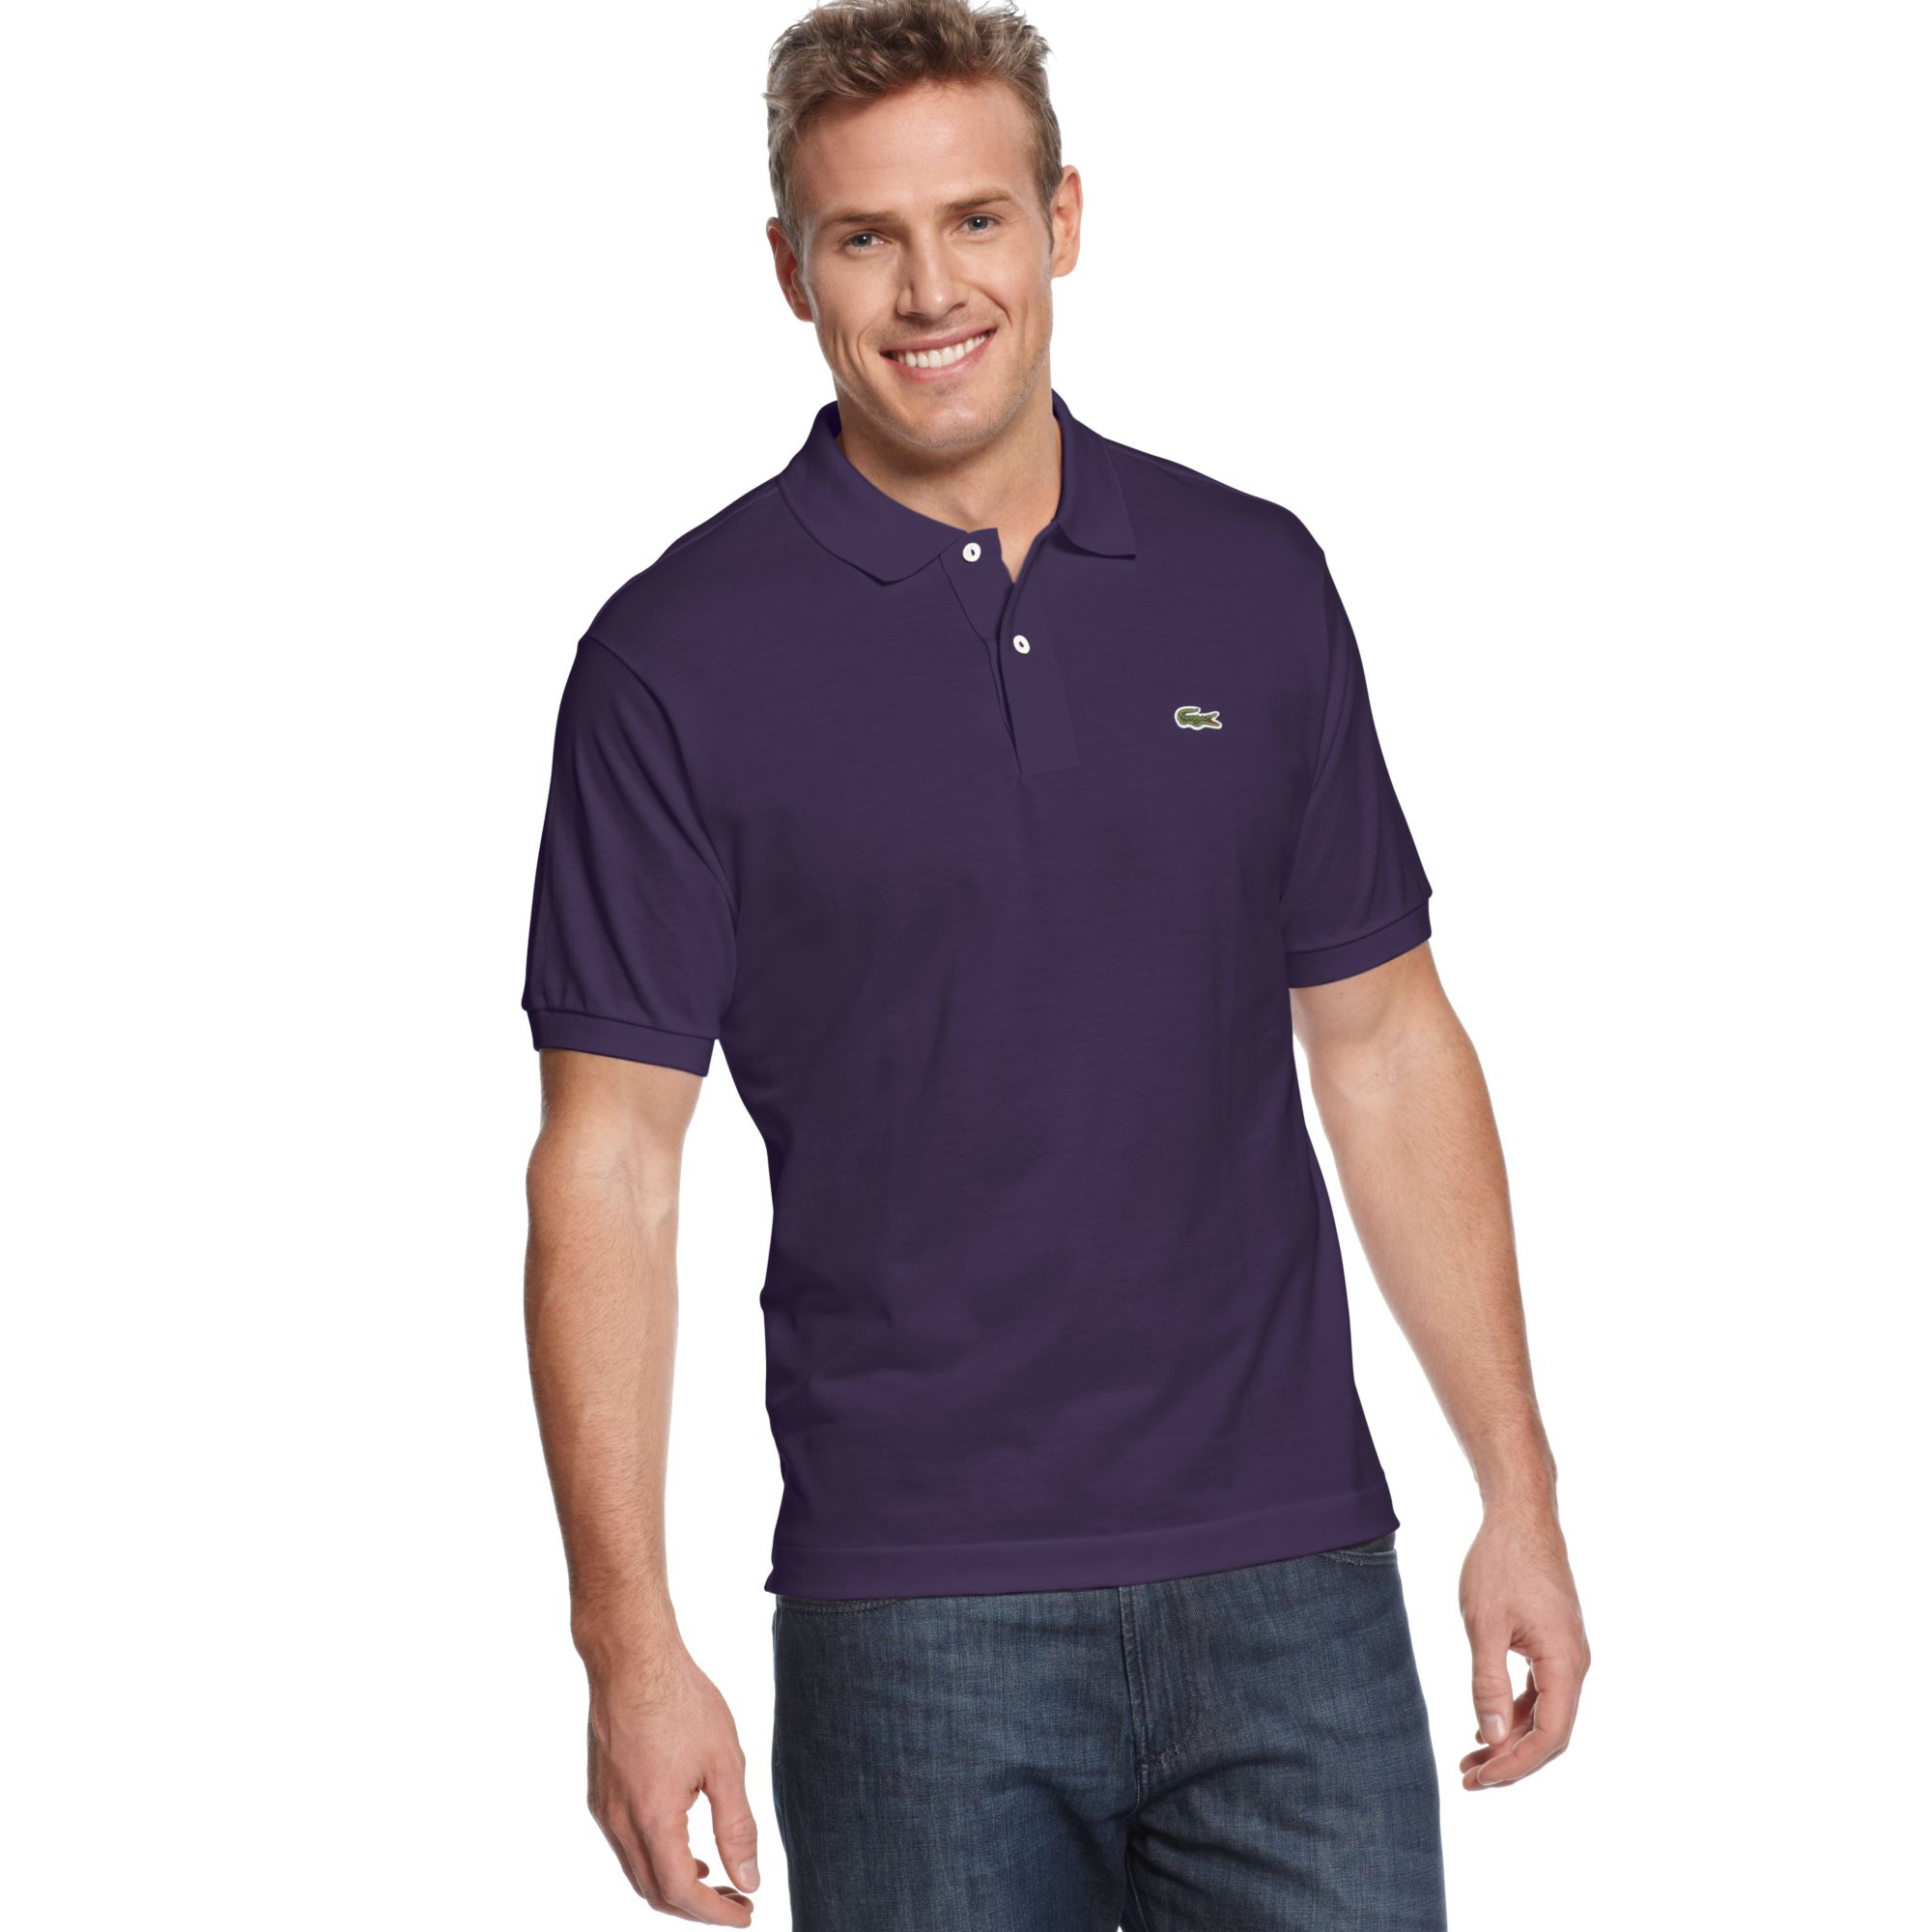 Lacoste classic pique polo shirt in purple for men lyst for Boys lacoste polo shirt